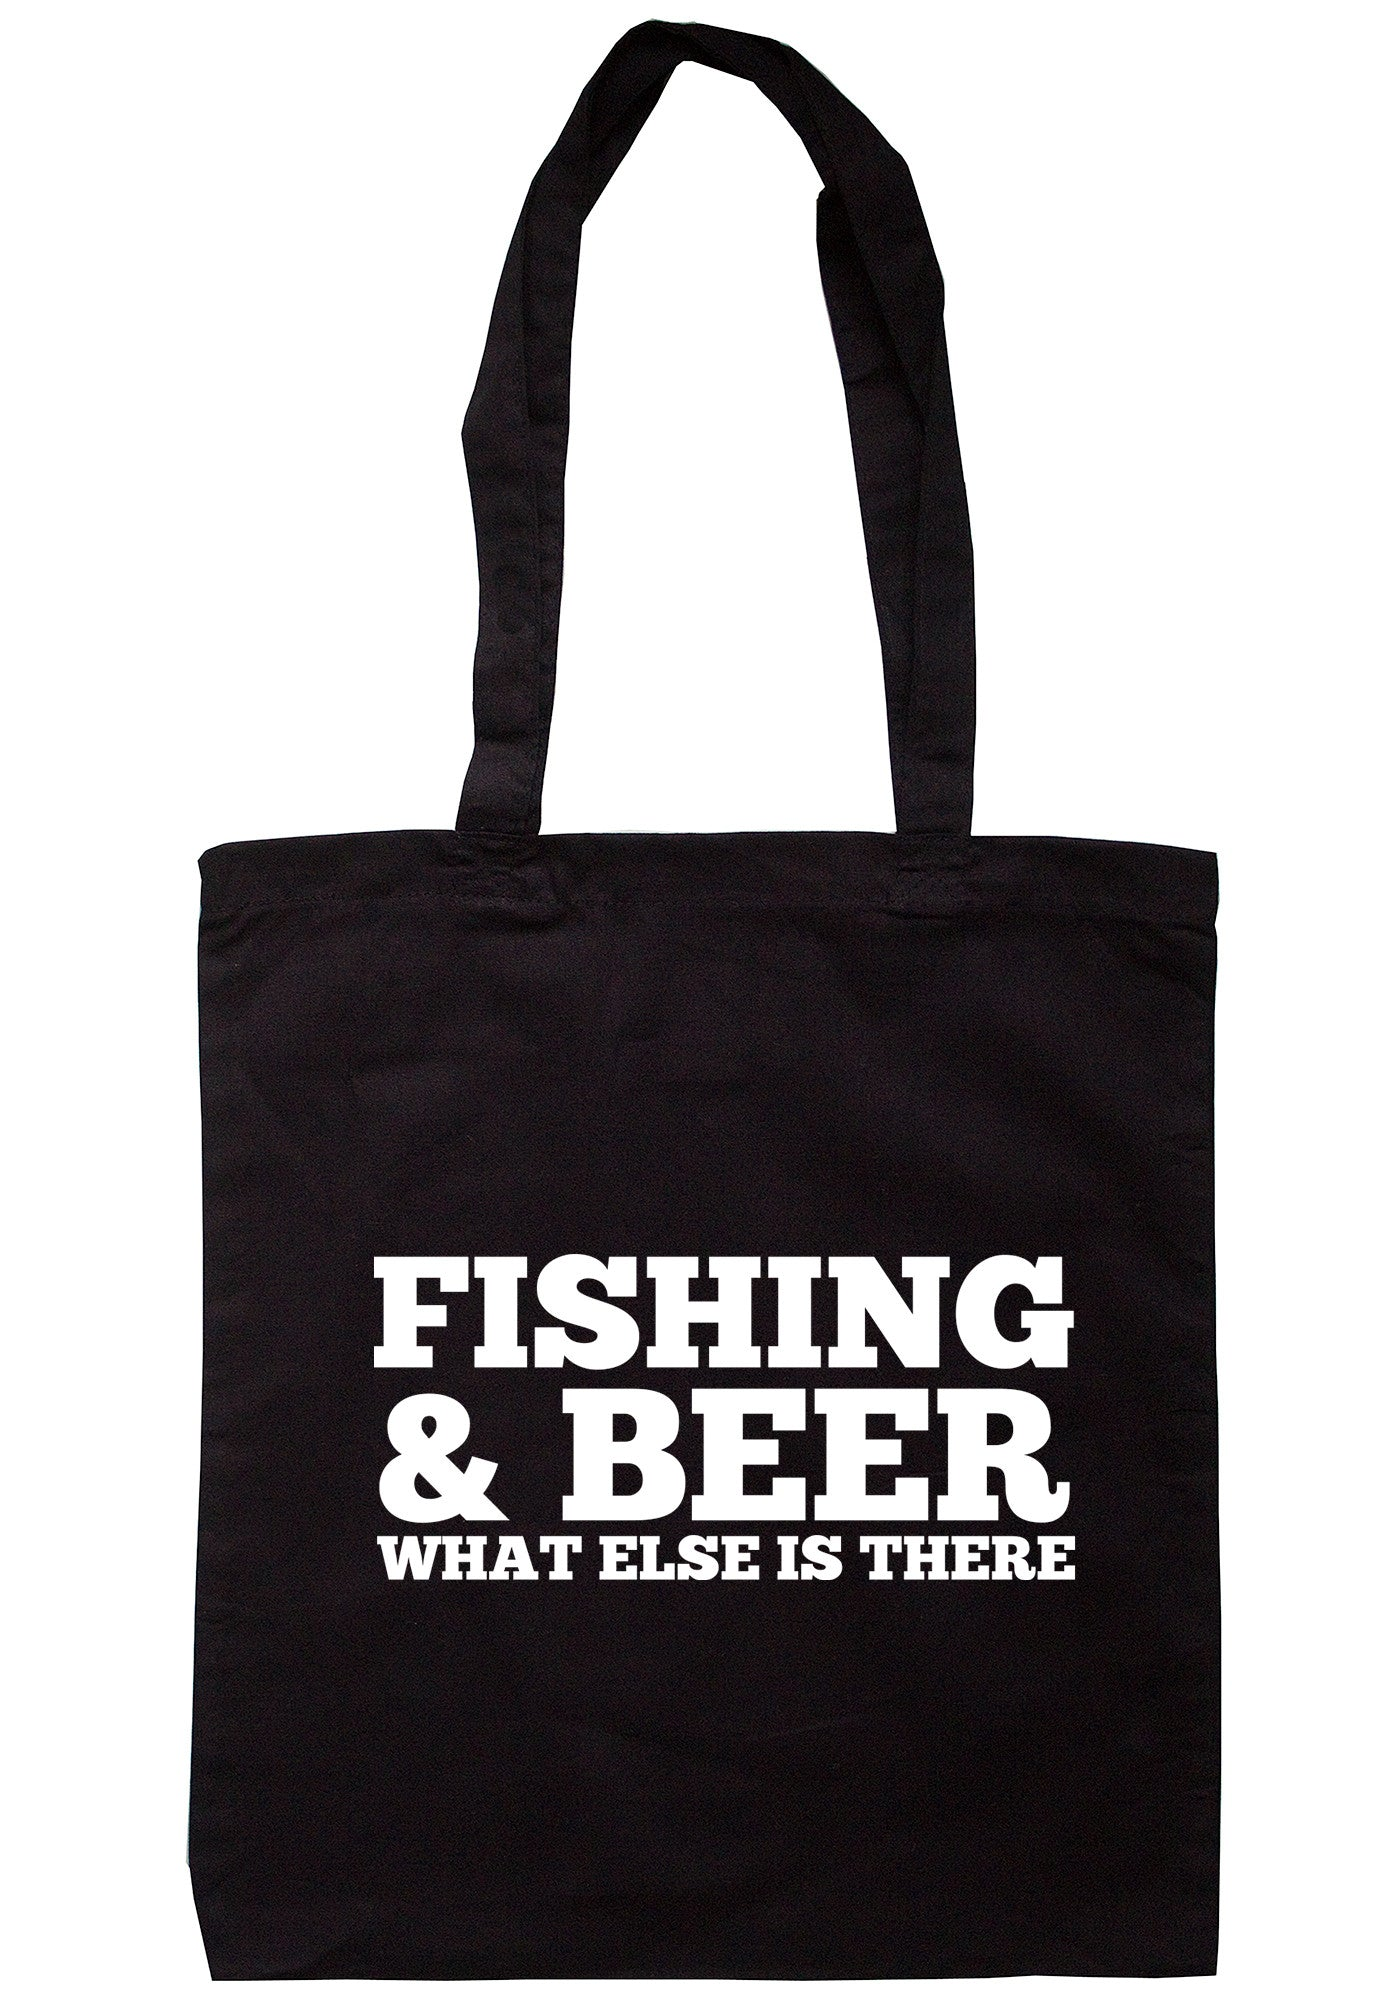 Fishing & Beer What Else Is There Tote Bag TB0469 - Illustrated Identity Ltd.